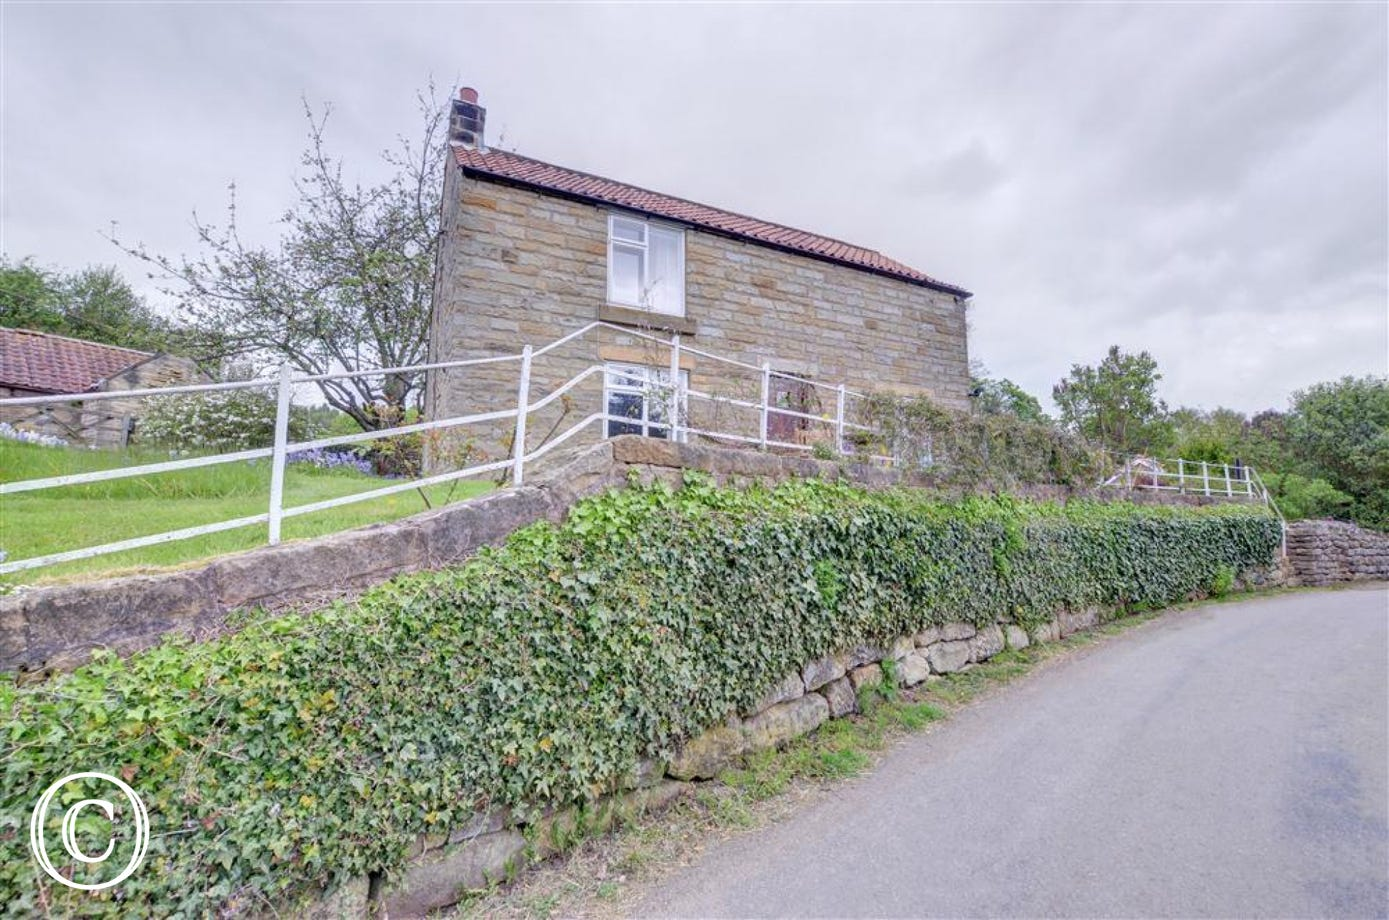 Rockley Cottage is accessed via a flight of steps to the right hand side of the property.